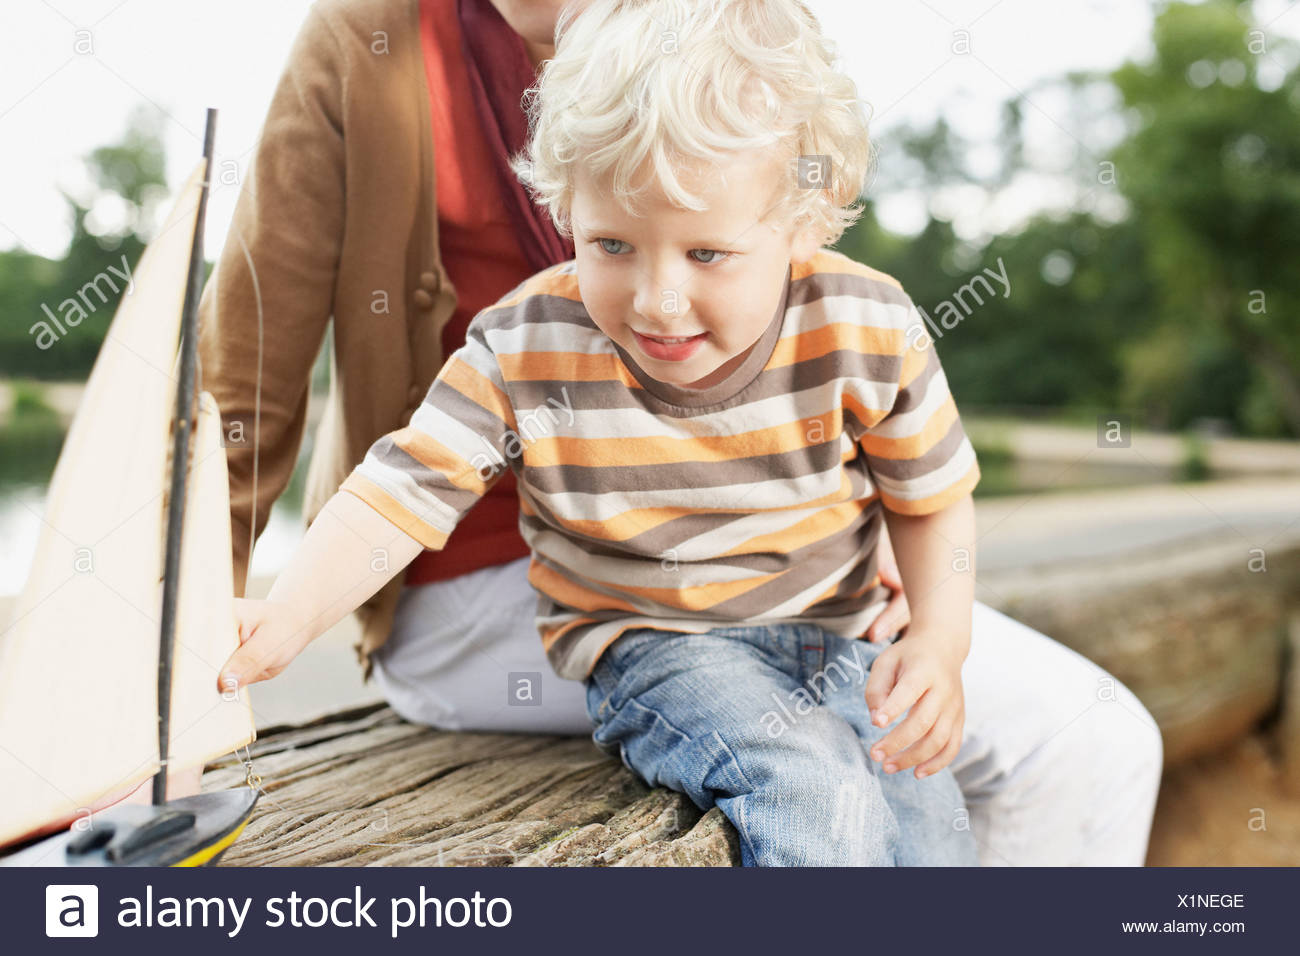 Boy playing with toy sailboat - Stock Image